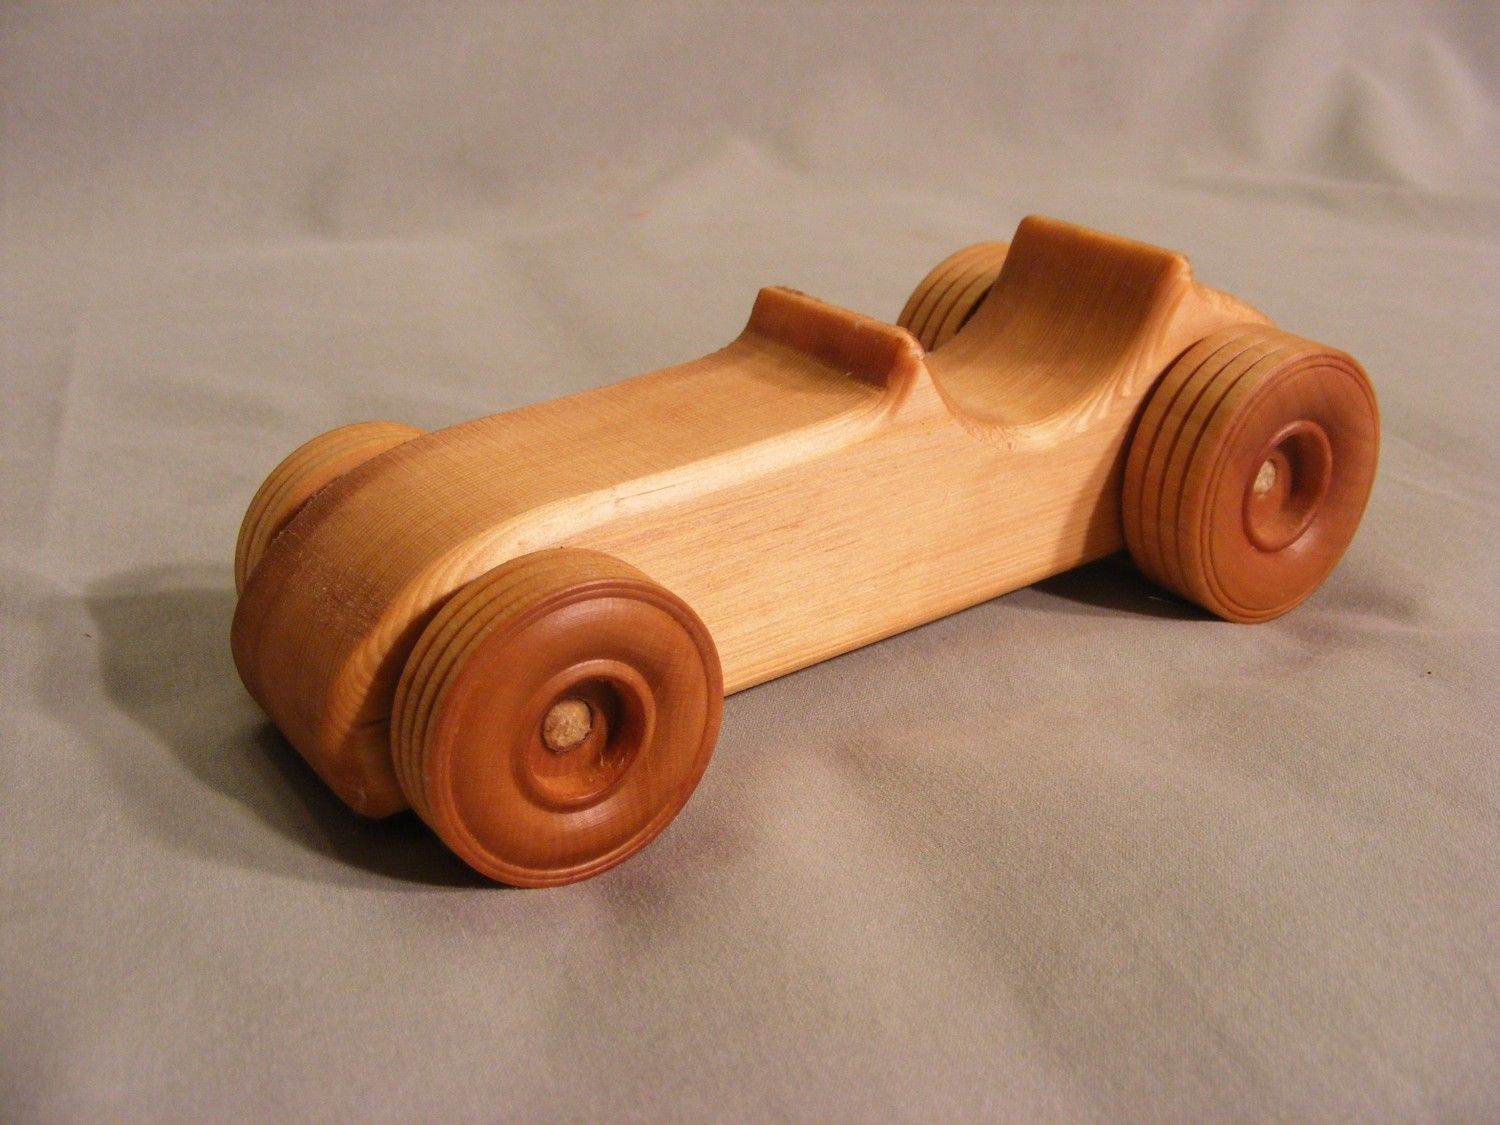 wooden toy car vintage indy rodbarzillawoods on etsy